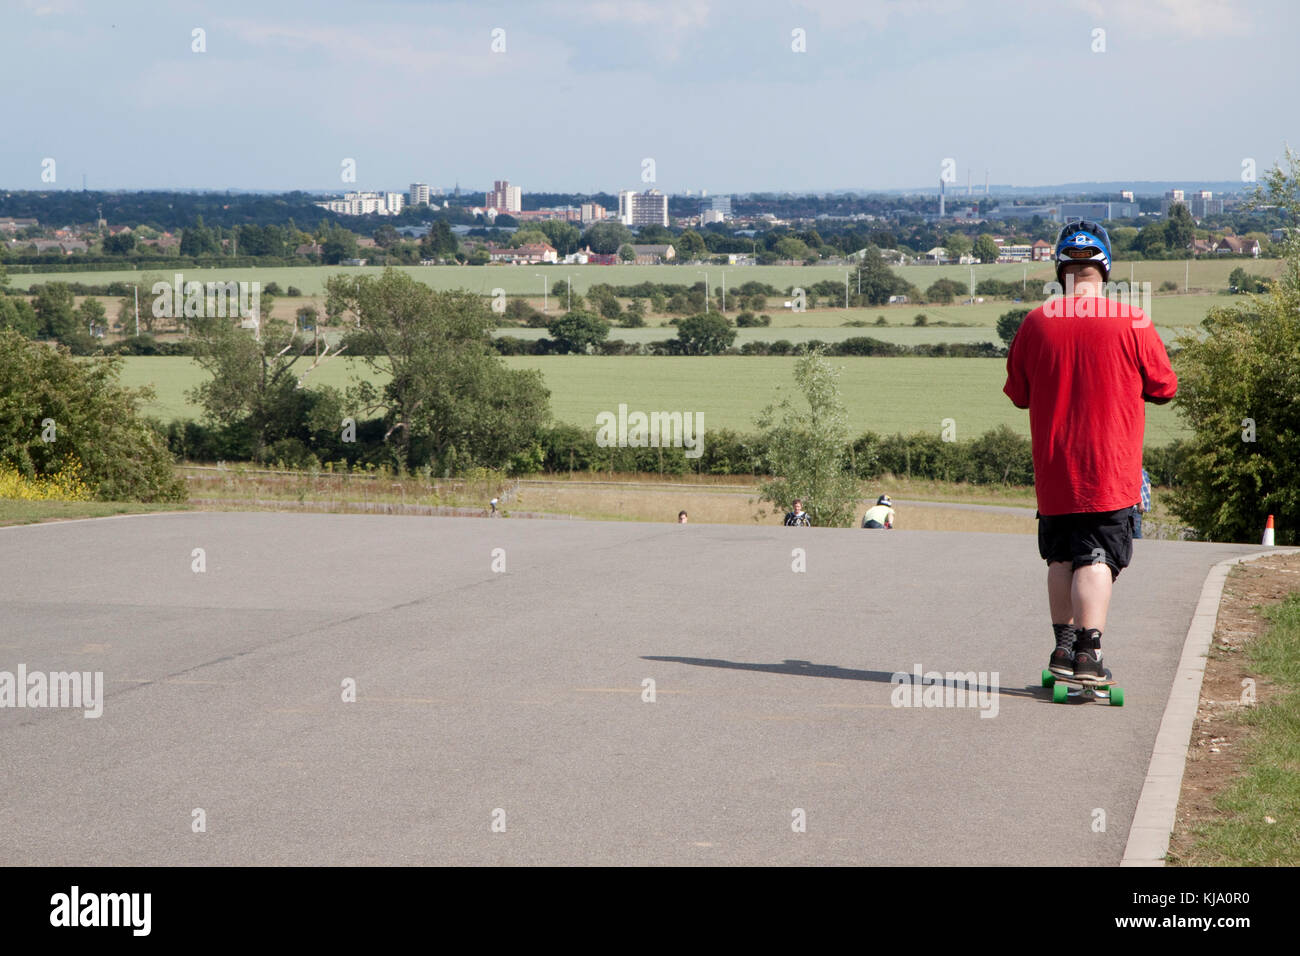 Looking out over Romford, Dagenham, Upminster etc from Redbridge Cycling Centre - Stock Image